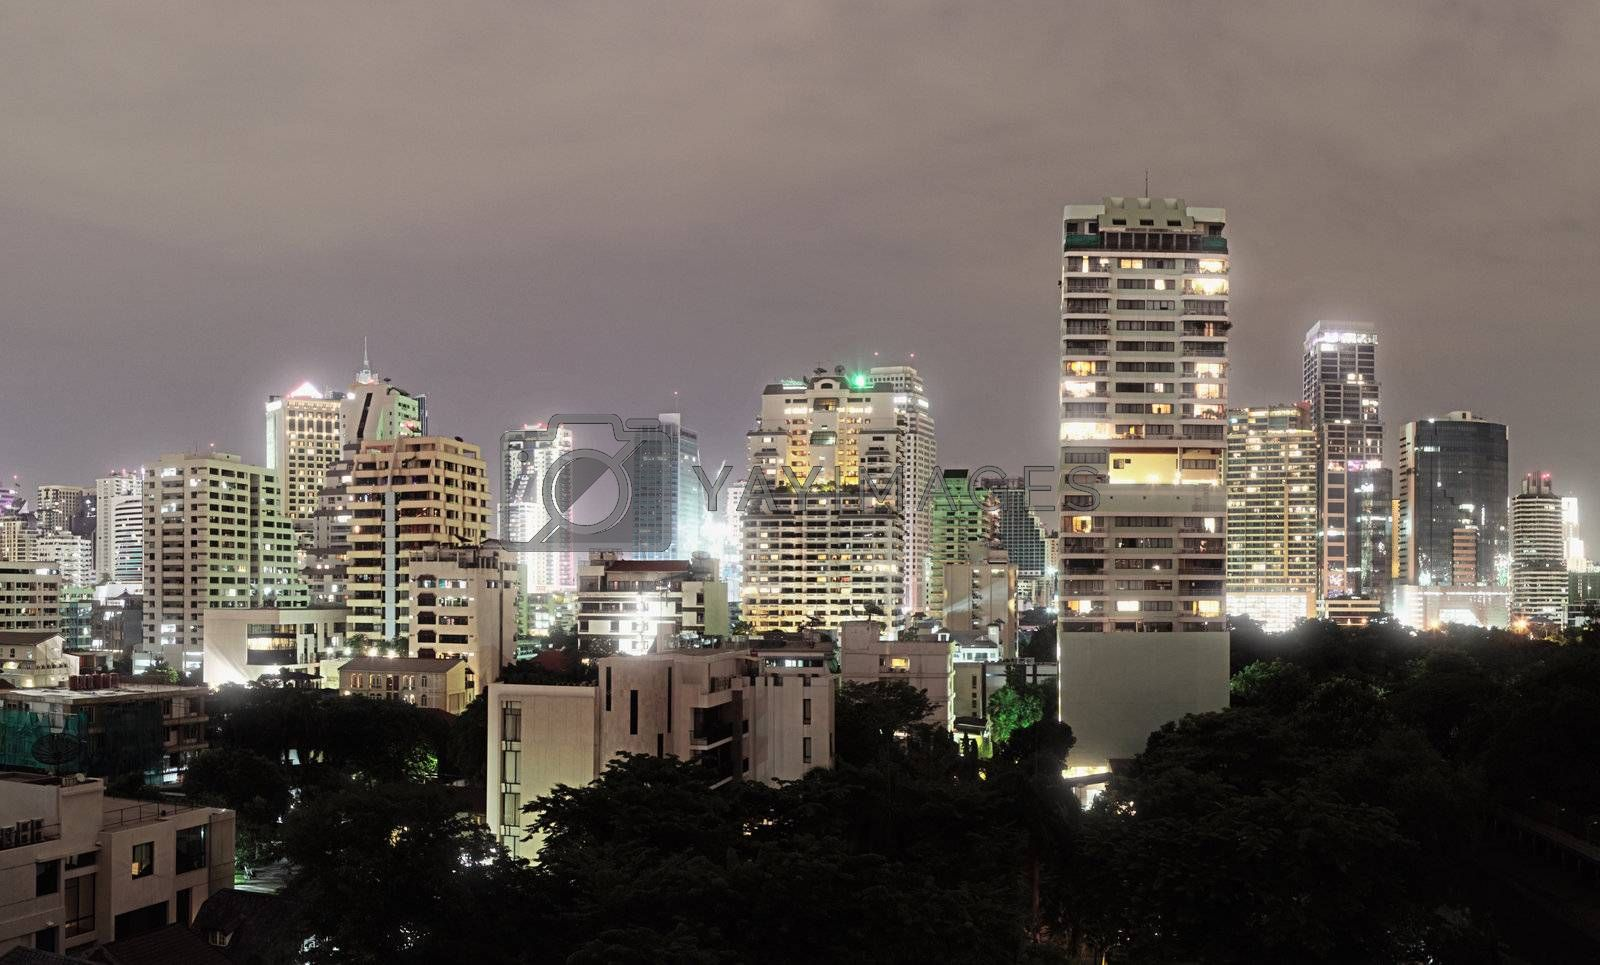 Modern architecture in Bangkok - high-rise buildings in the city center